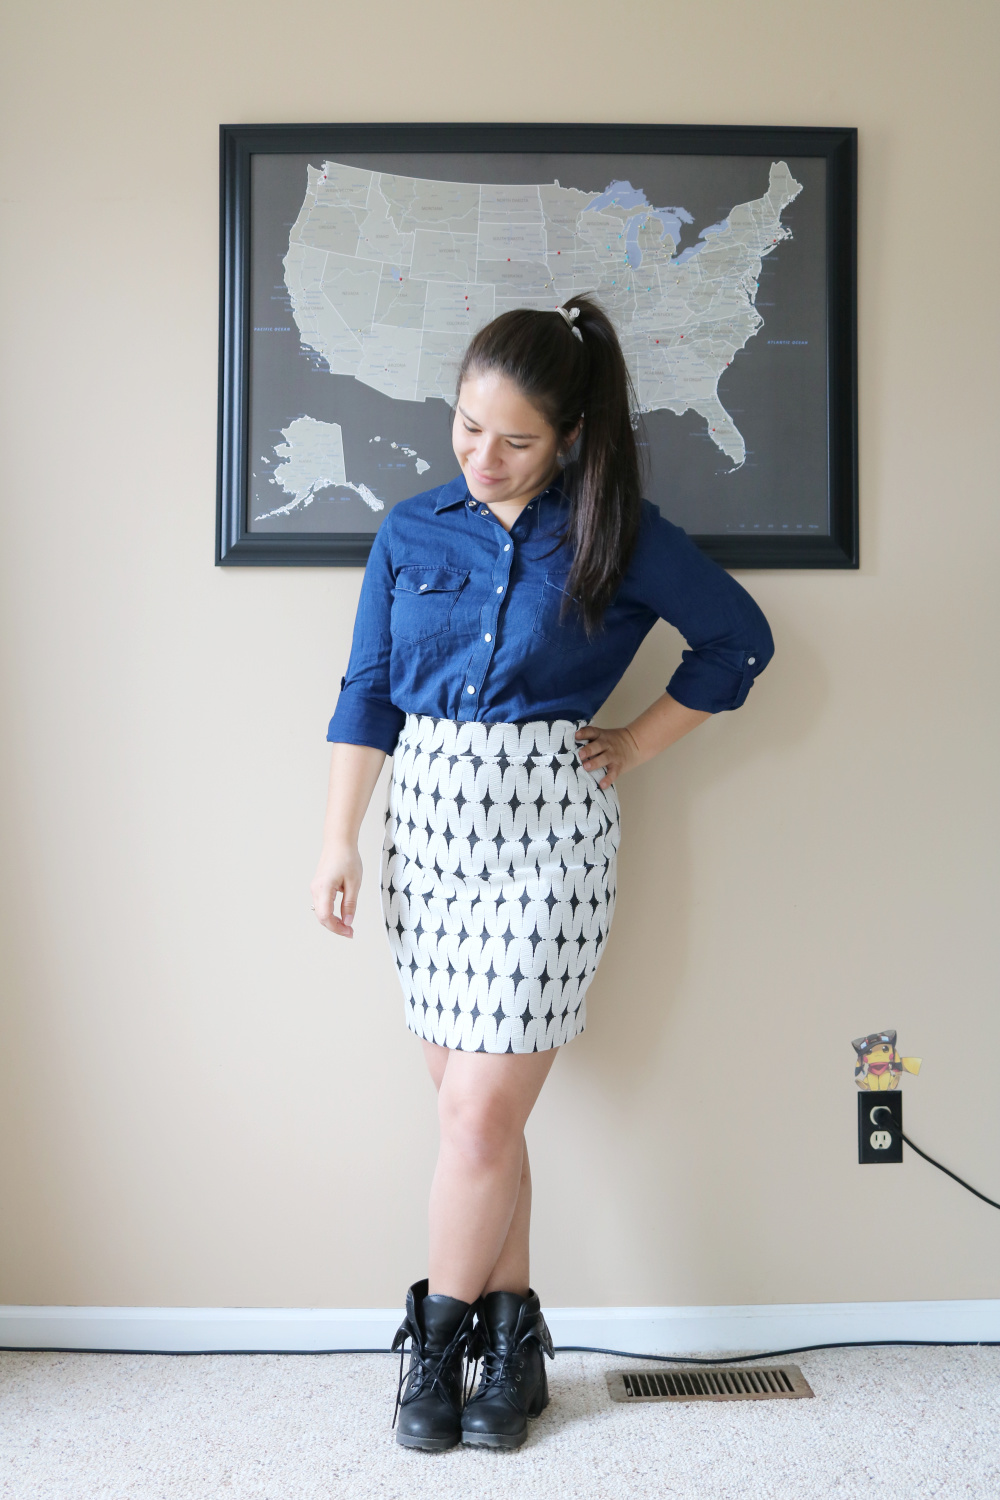 Kut From The Kloth chambray shirt and Renee C printed skirt from Stitch Fix (Stitch Fix Review 22)